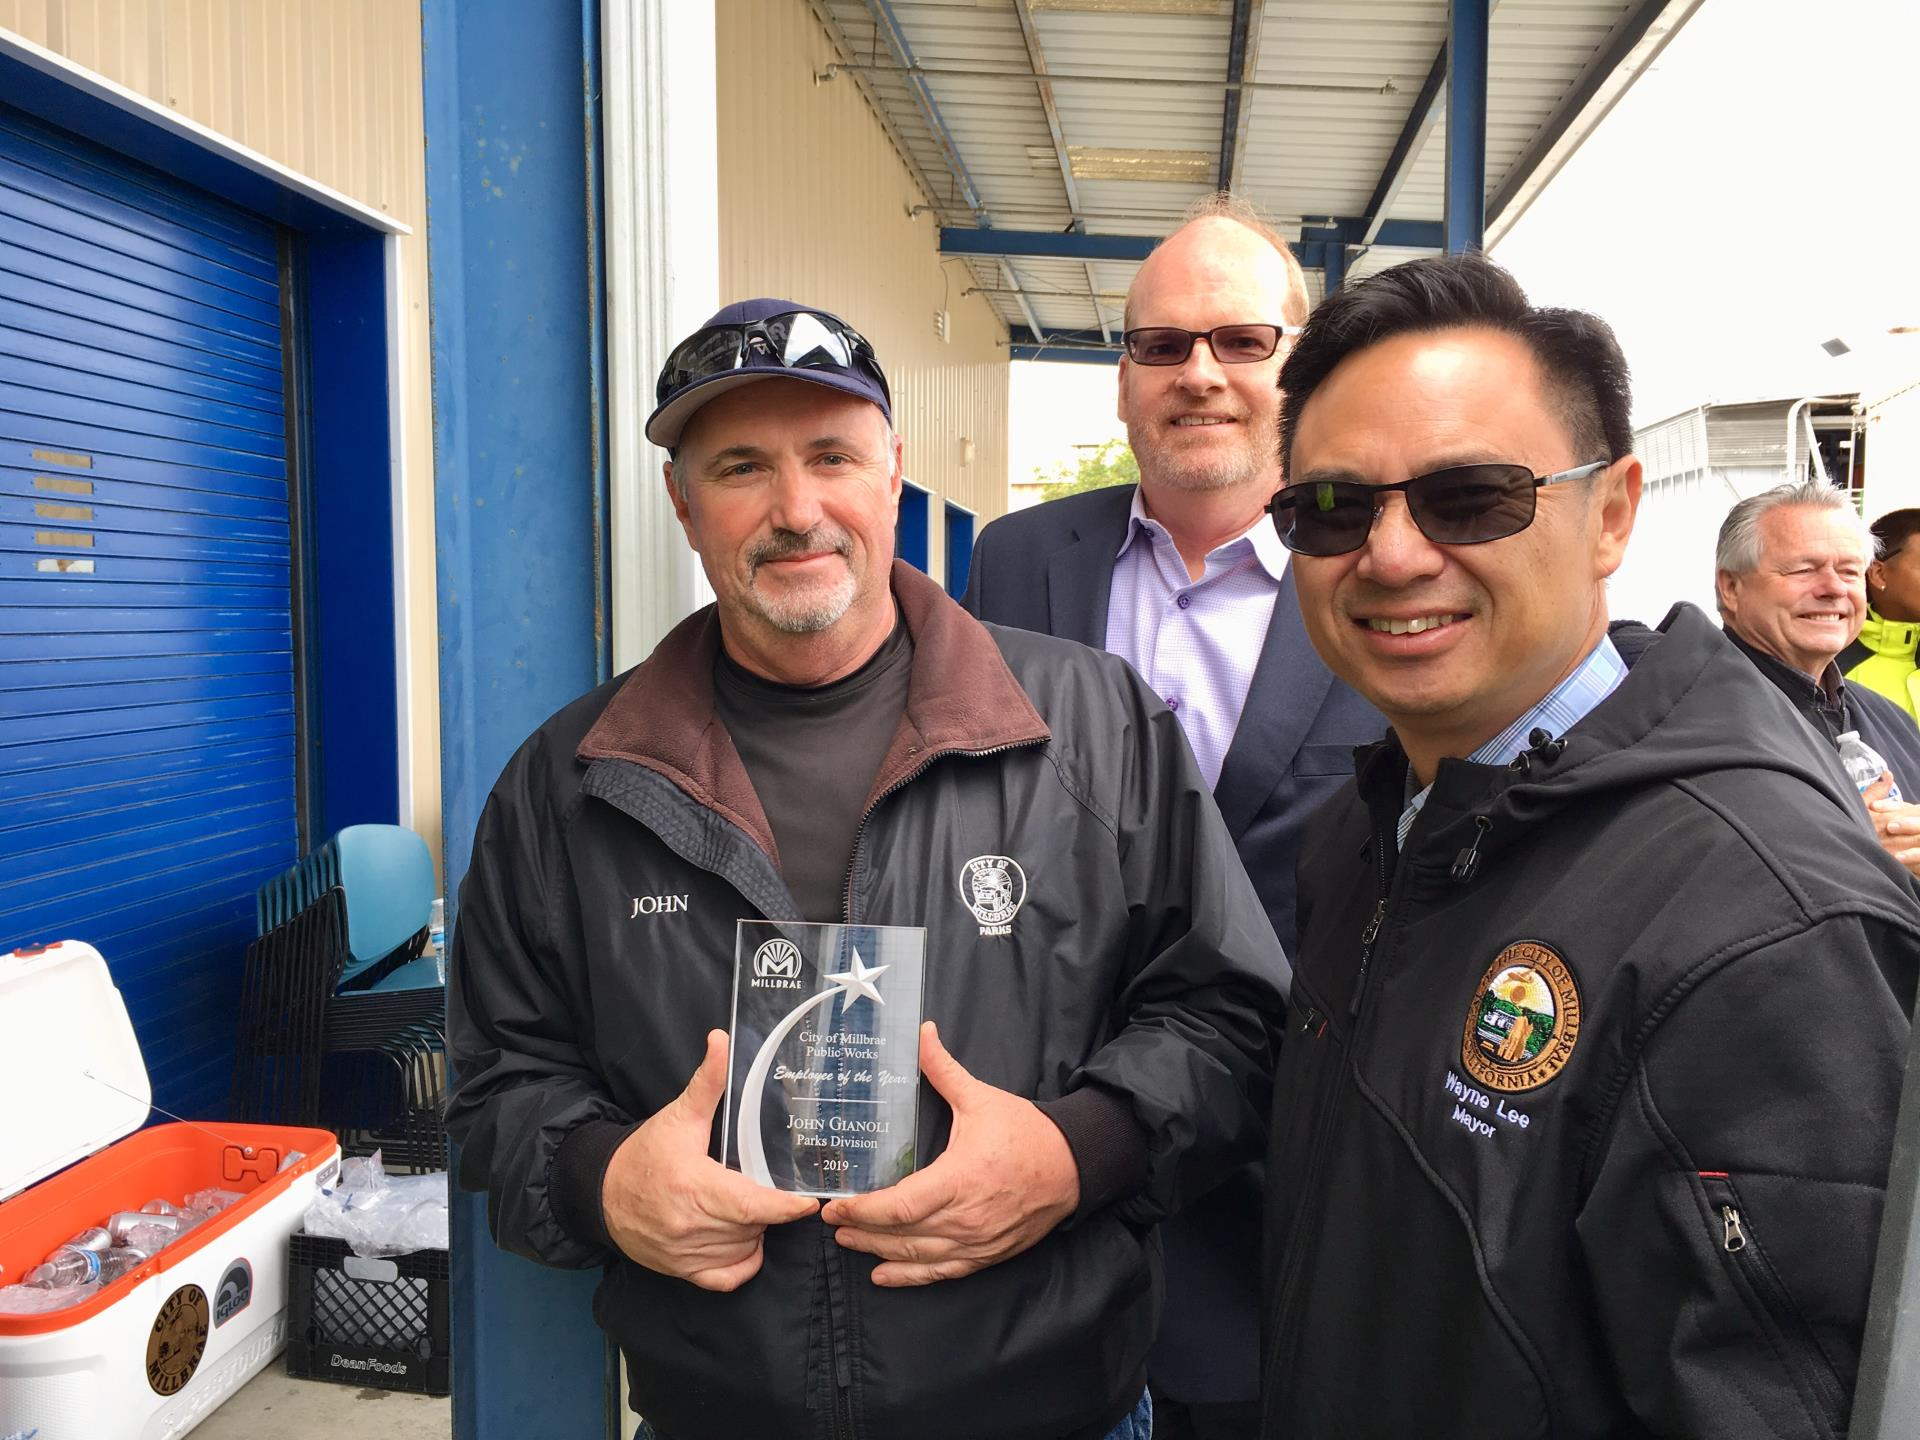 John Gianoli was named Public Works Employee of the Year